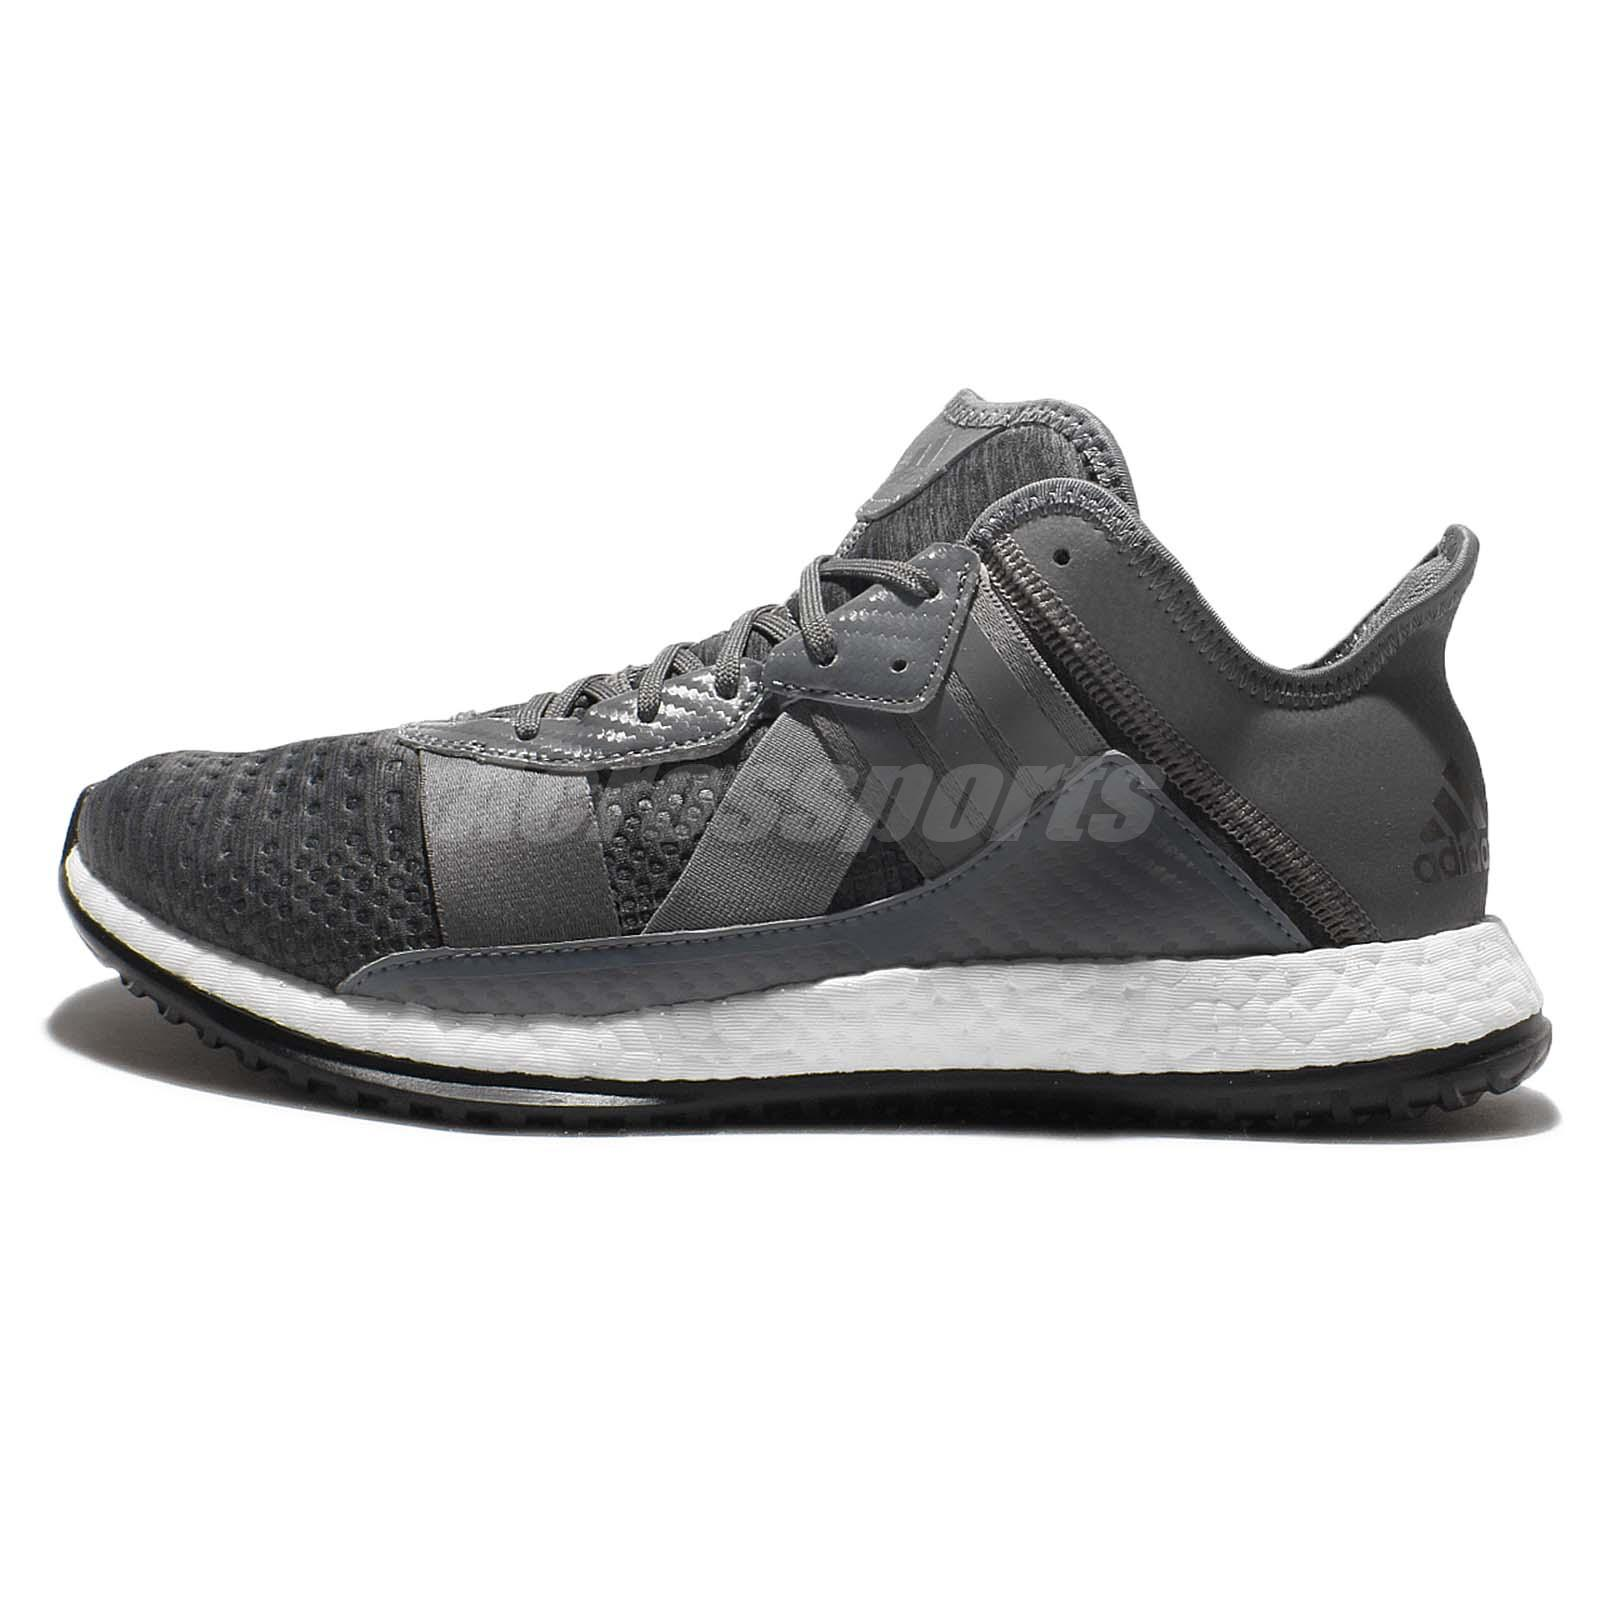 82e63a50217cb Adidas Pure Boost Zg Grey los-granados-apartment.co.uk